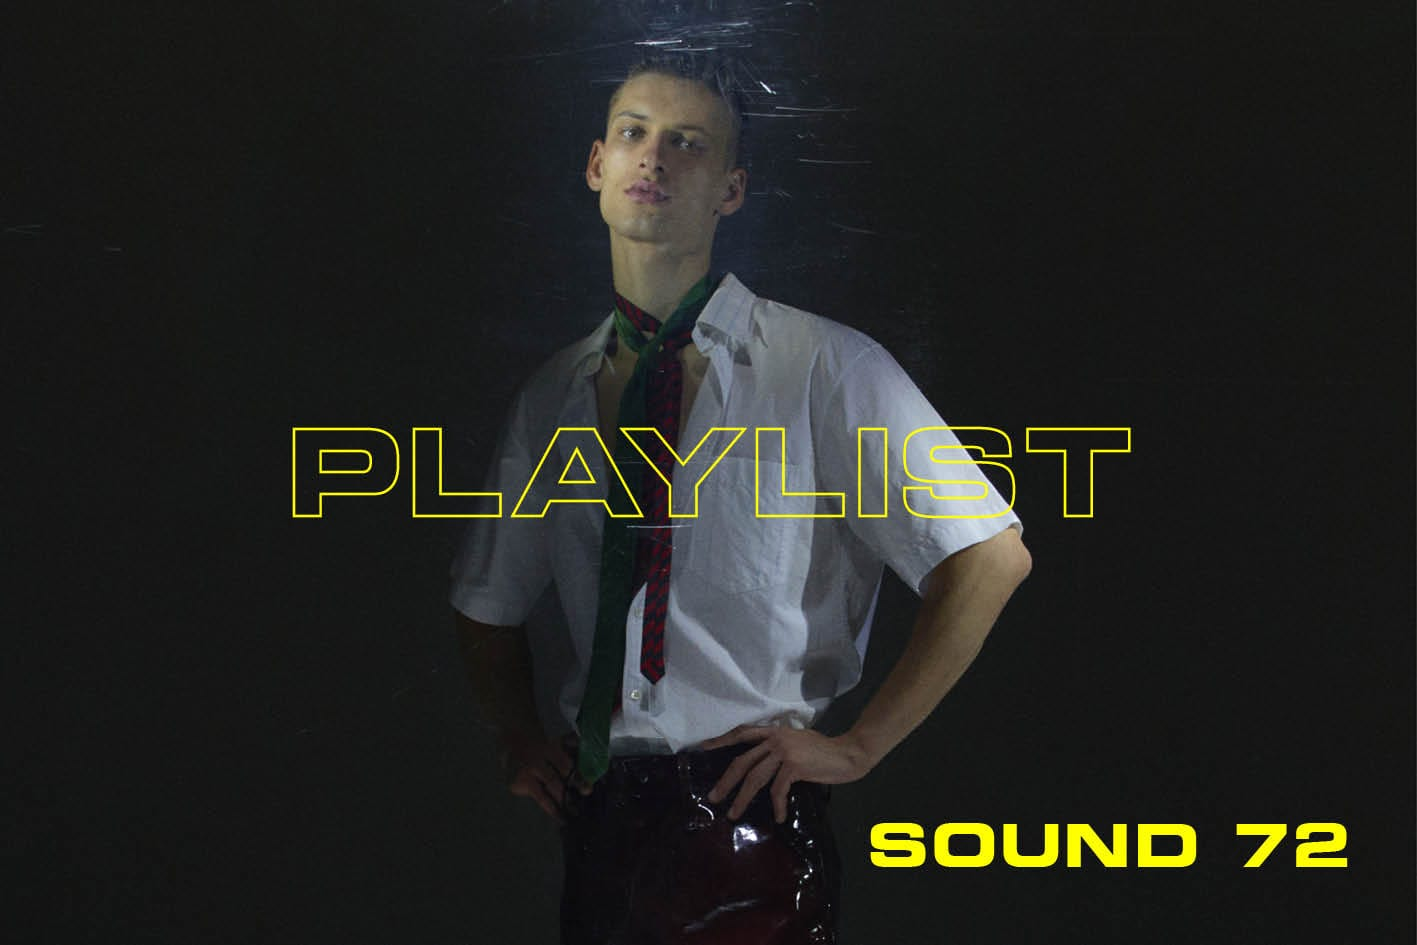 Sound 72 : La Nouvelle Playlist De Workerz Pour Antidote